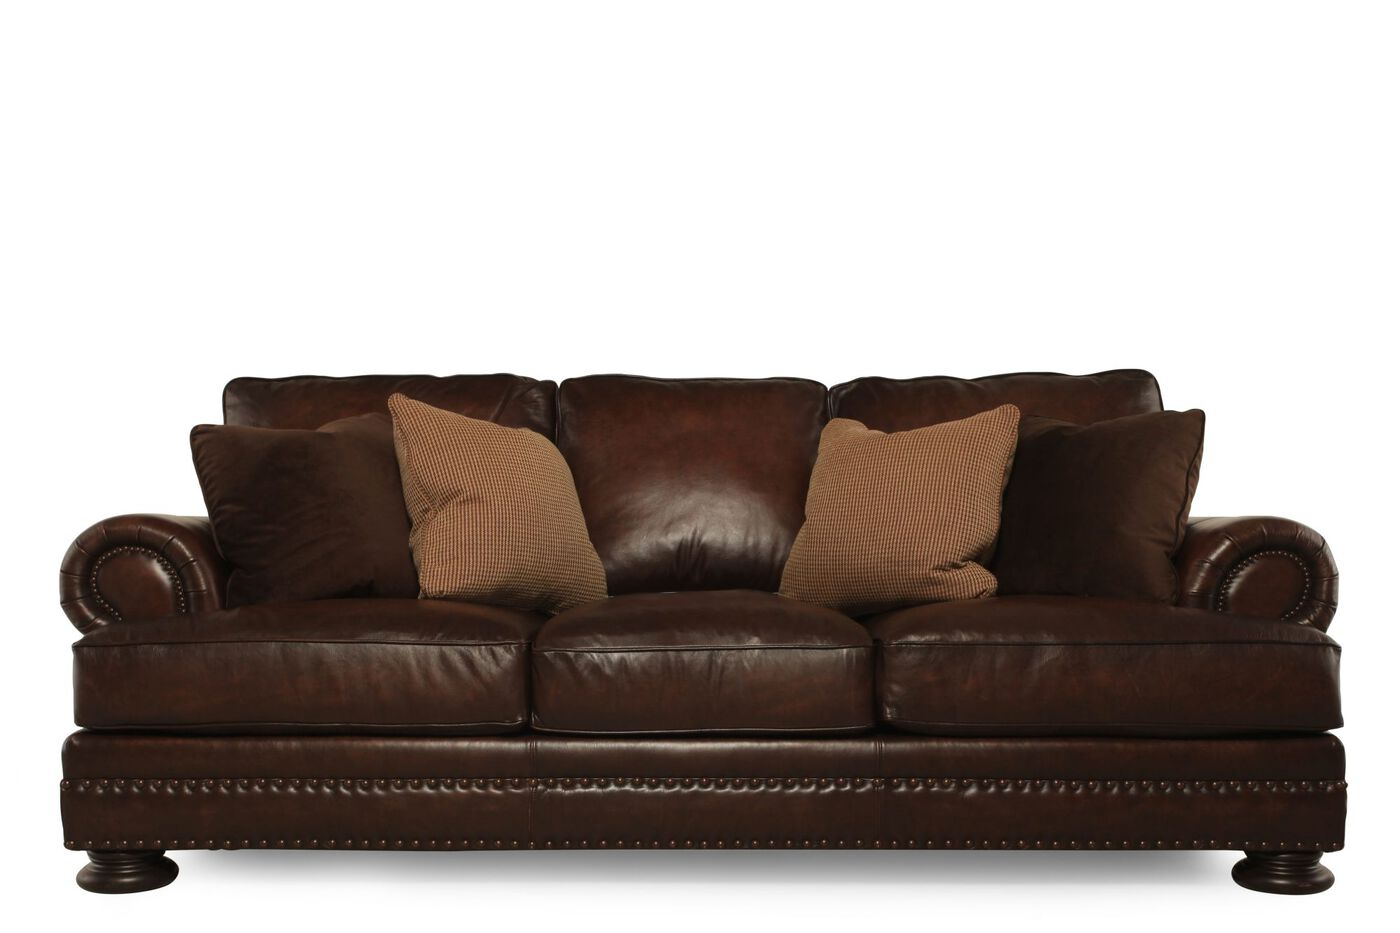 Bernhardt foster leather sofa mathis brothers furniture for Bernhardt furniture